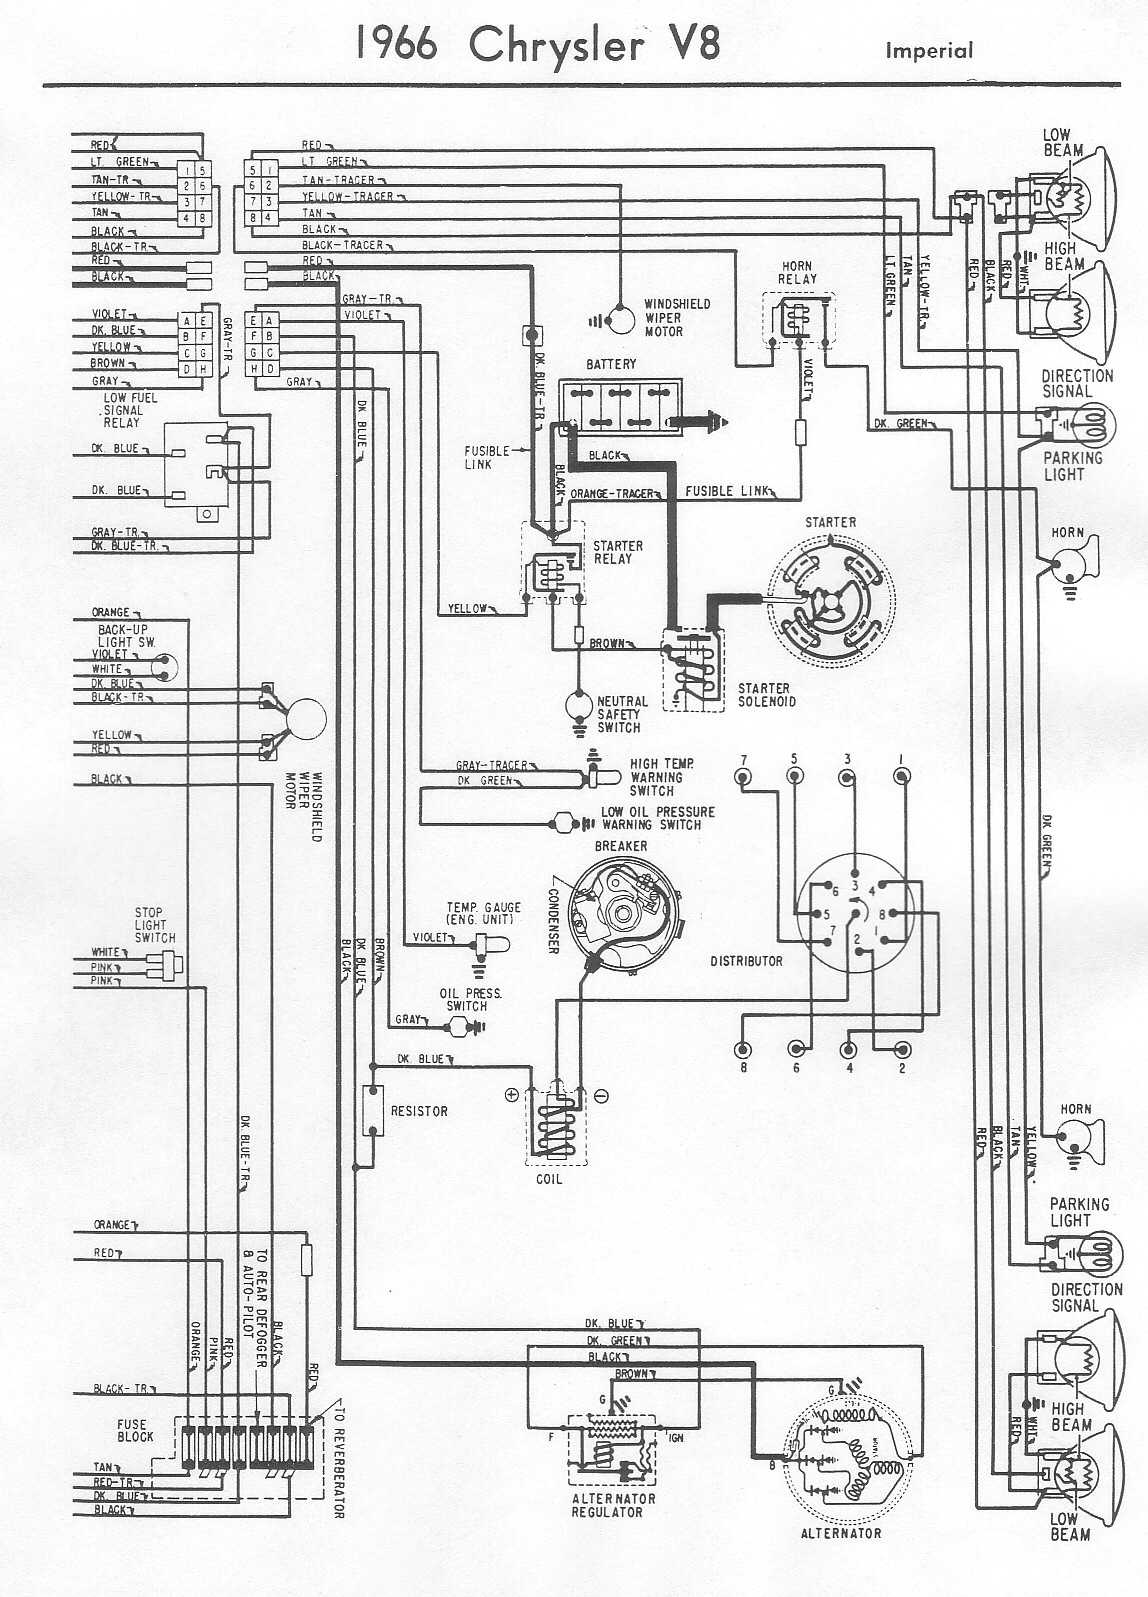 Car Wiring Diagram Free : Free auto wiring diagram